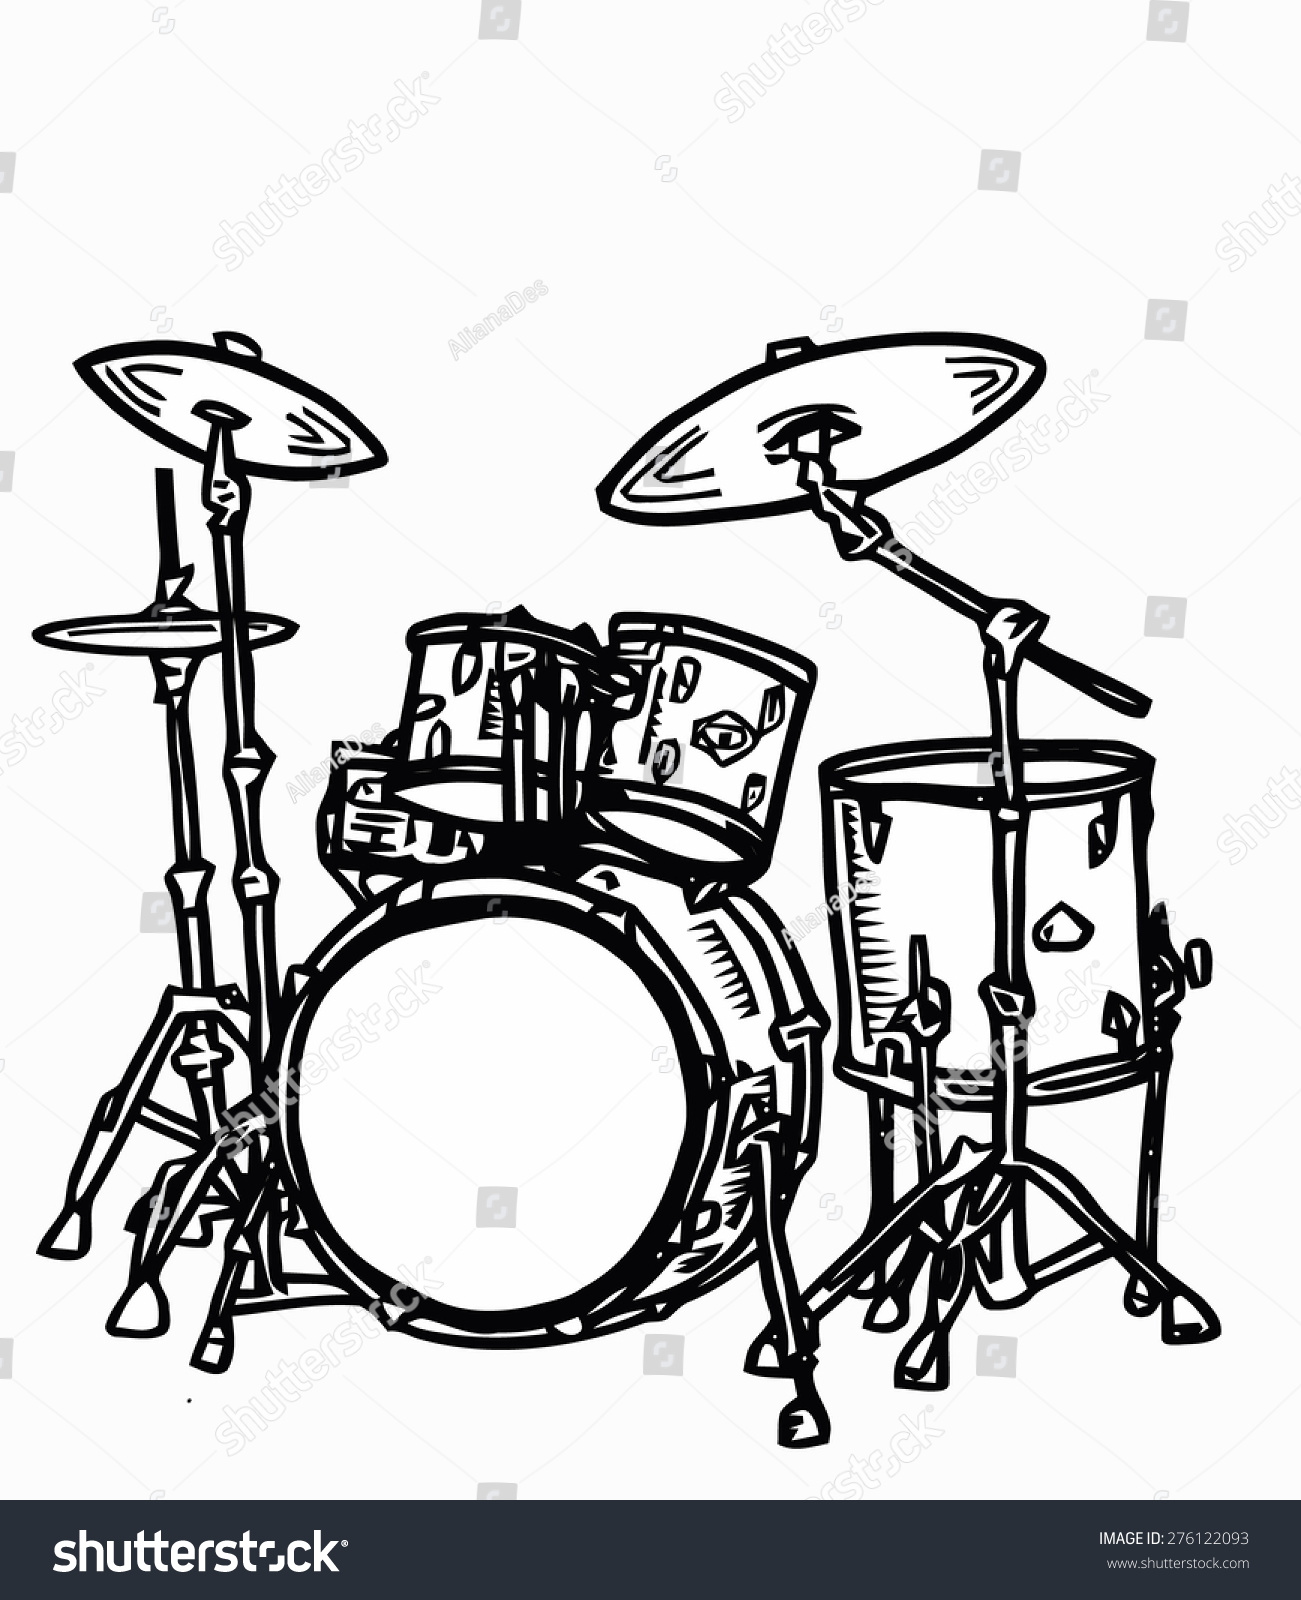 Stock Realistic Illustration Drum Kit Snare Photography For Diagram Of A With Bass In Cartoon And Sketch Style